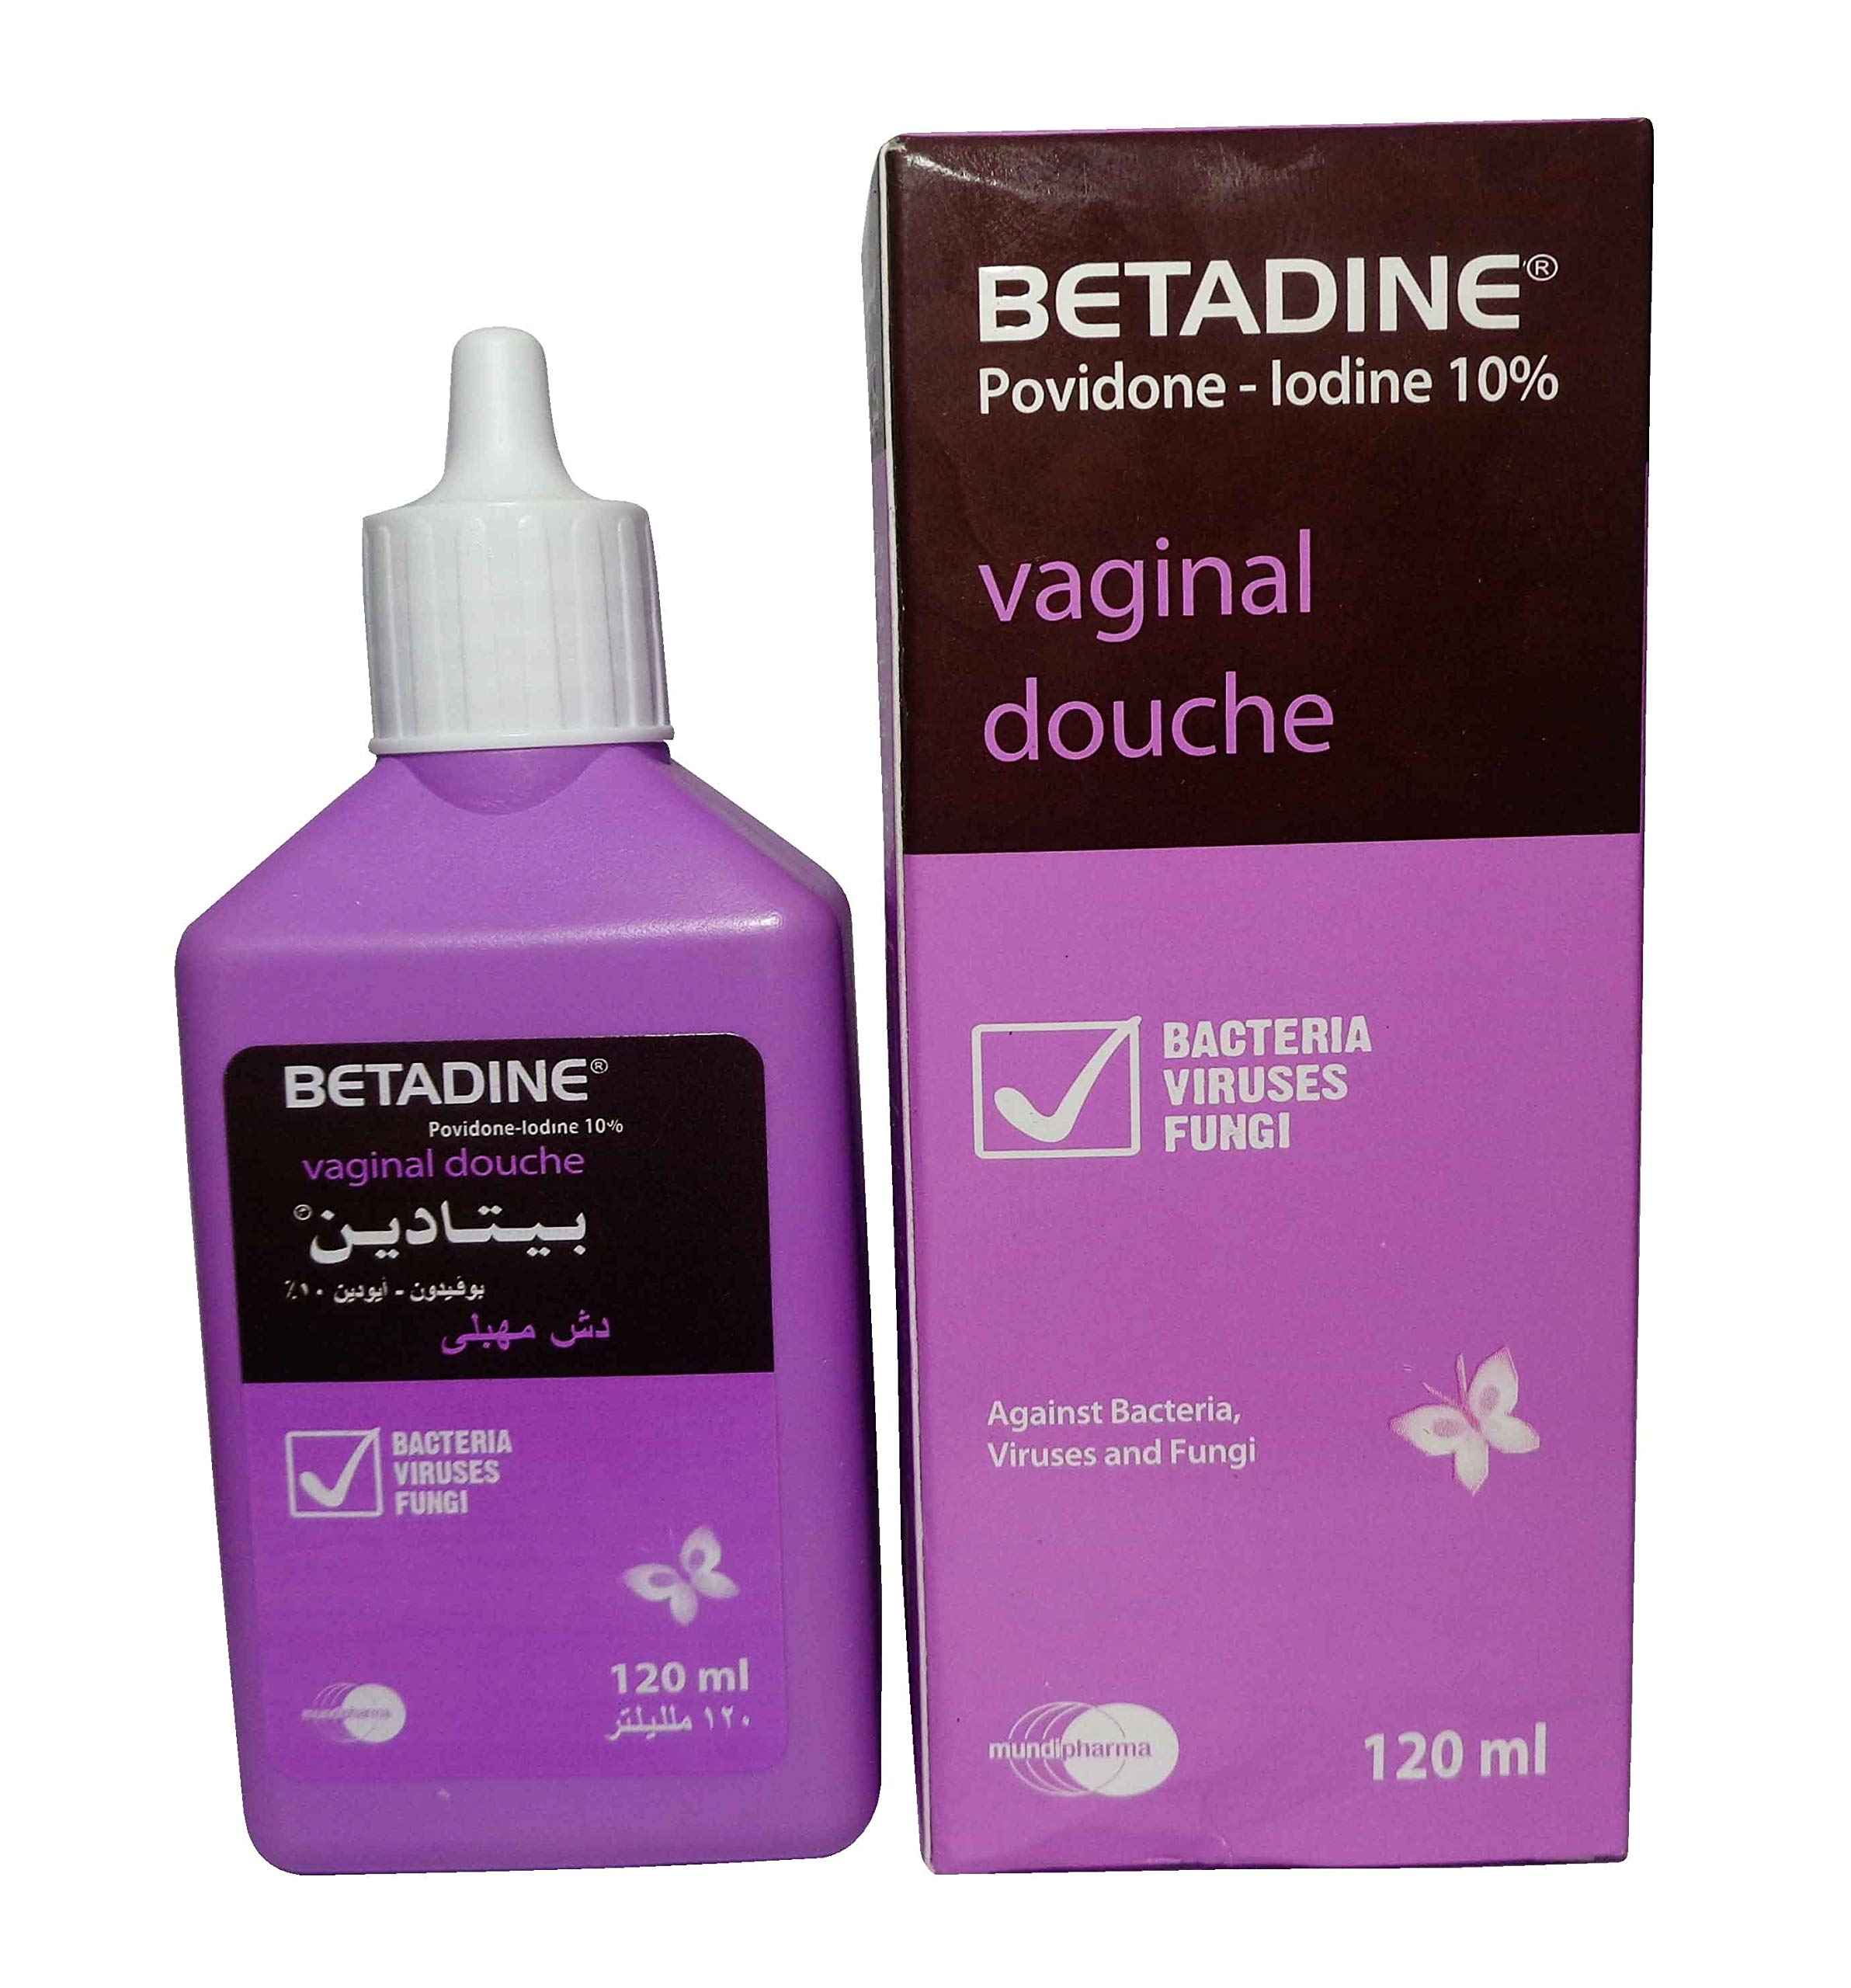 BETADINE Vaginal Douche Povidone-Iodine 10% for Women Intimate Care 120 ml (6 Packs / 720 ml) by Betadine